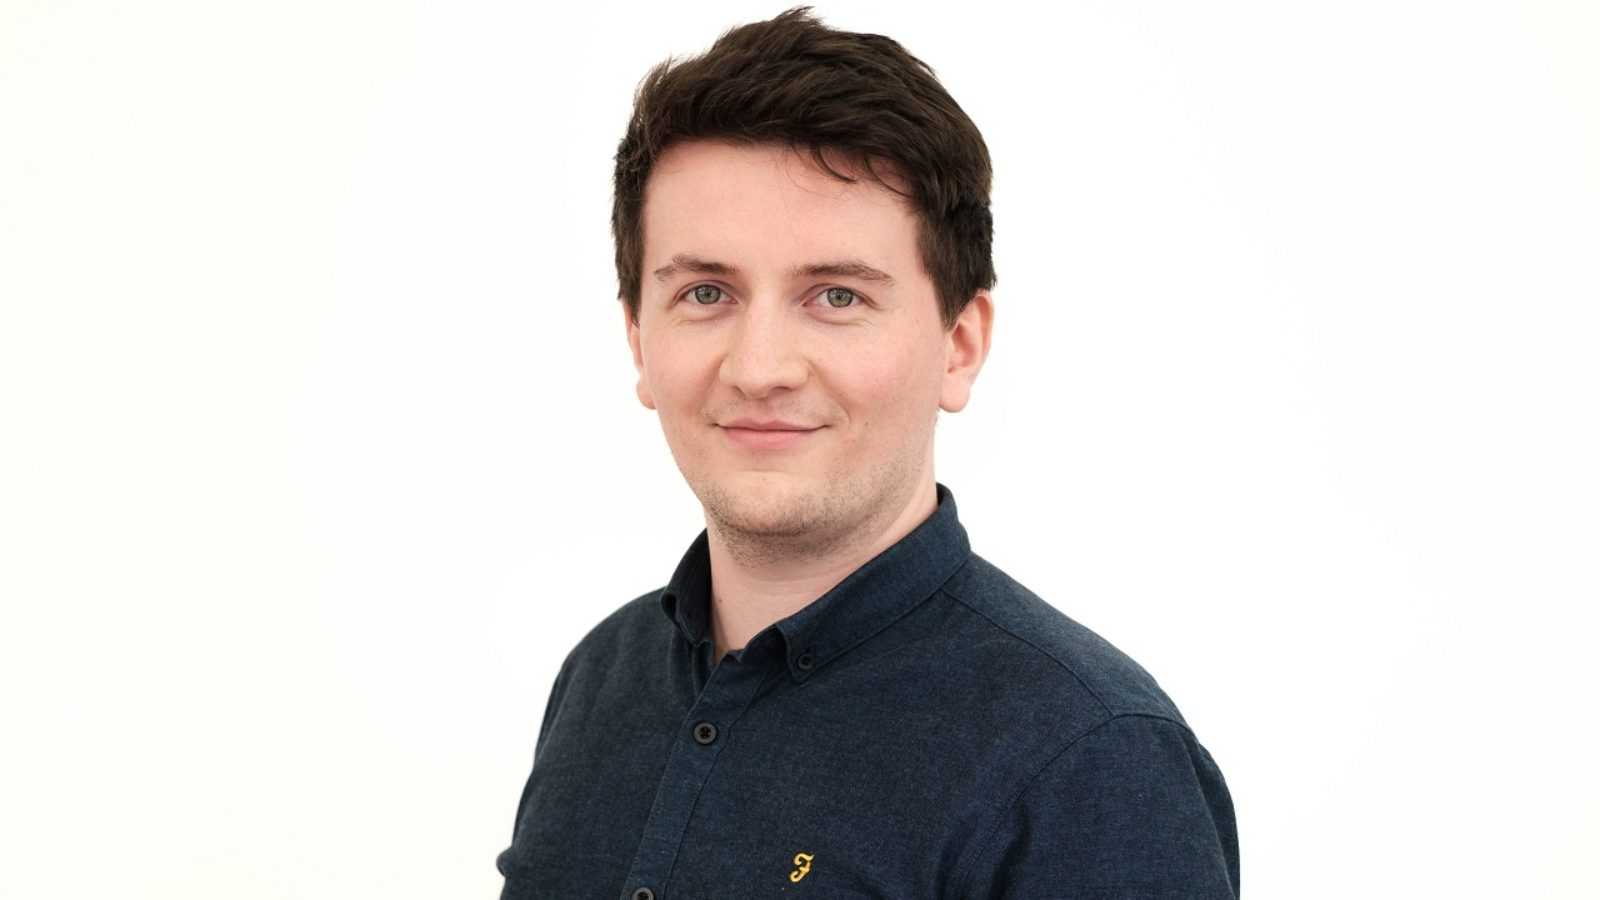 David McLennan, author and software developer, INSISO